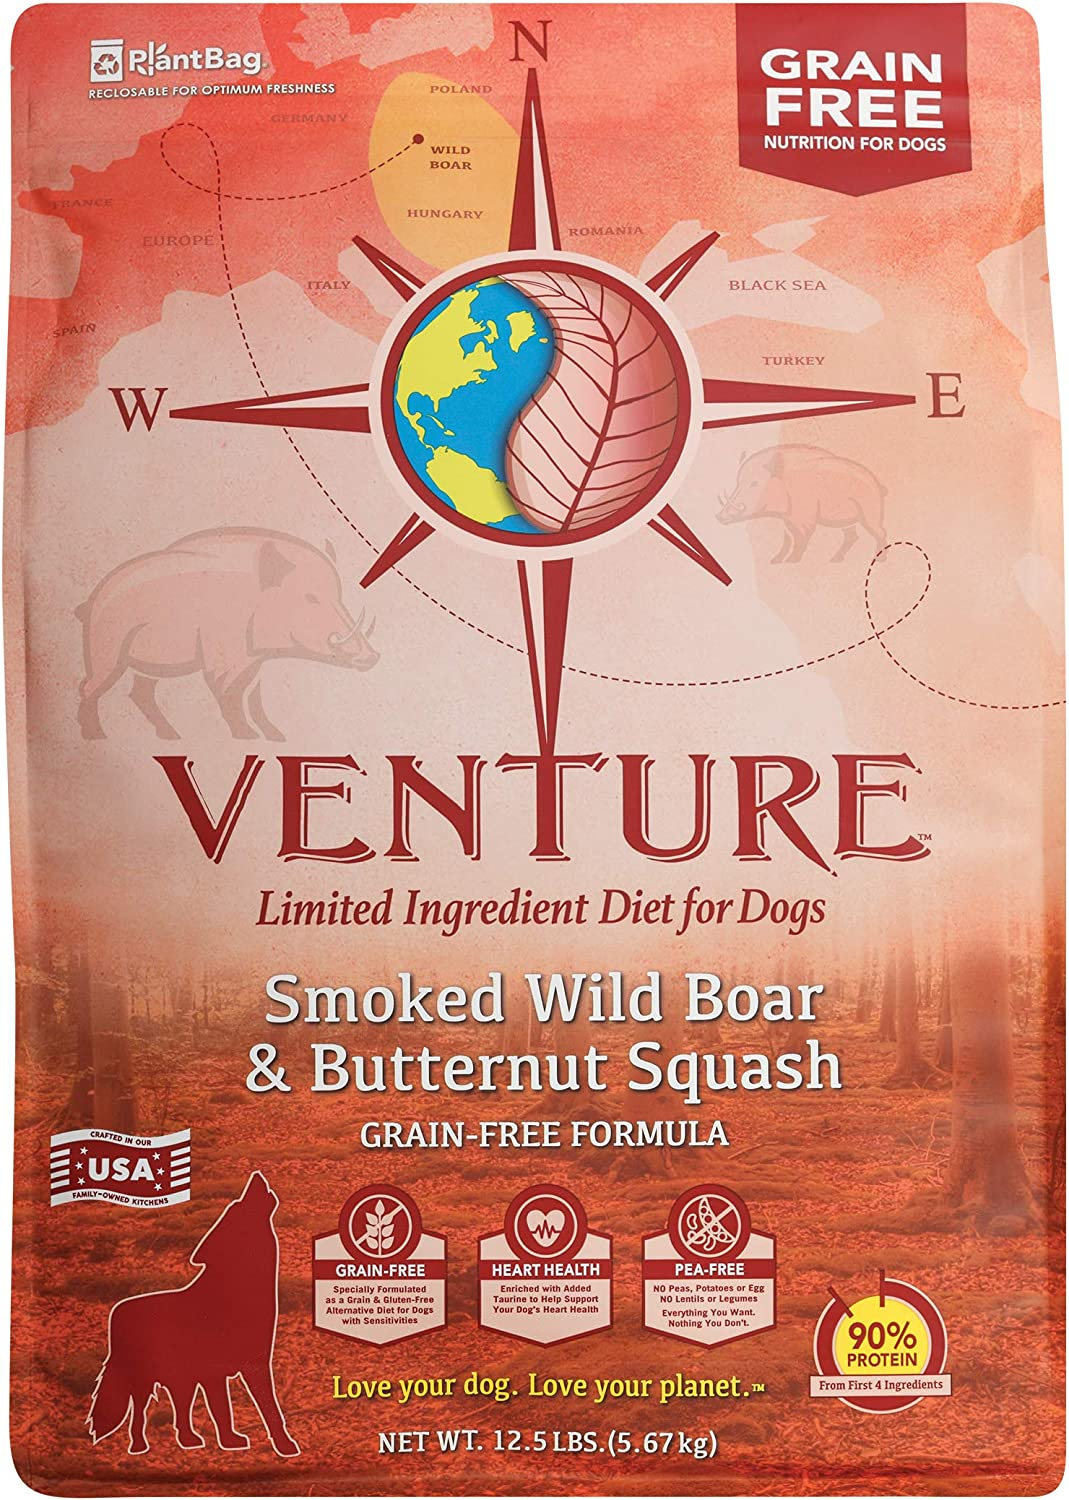 Venture Smoked Wild Boar & Butternut Squash Limited Ingredient Dry Dog Food